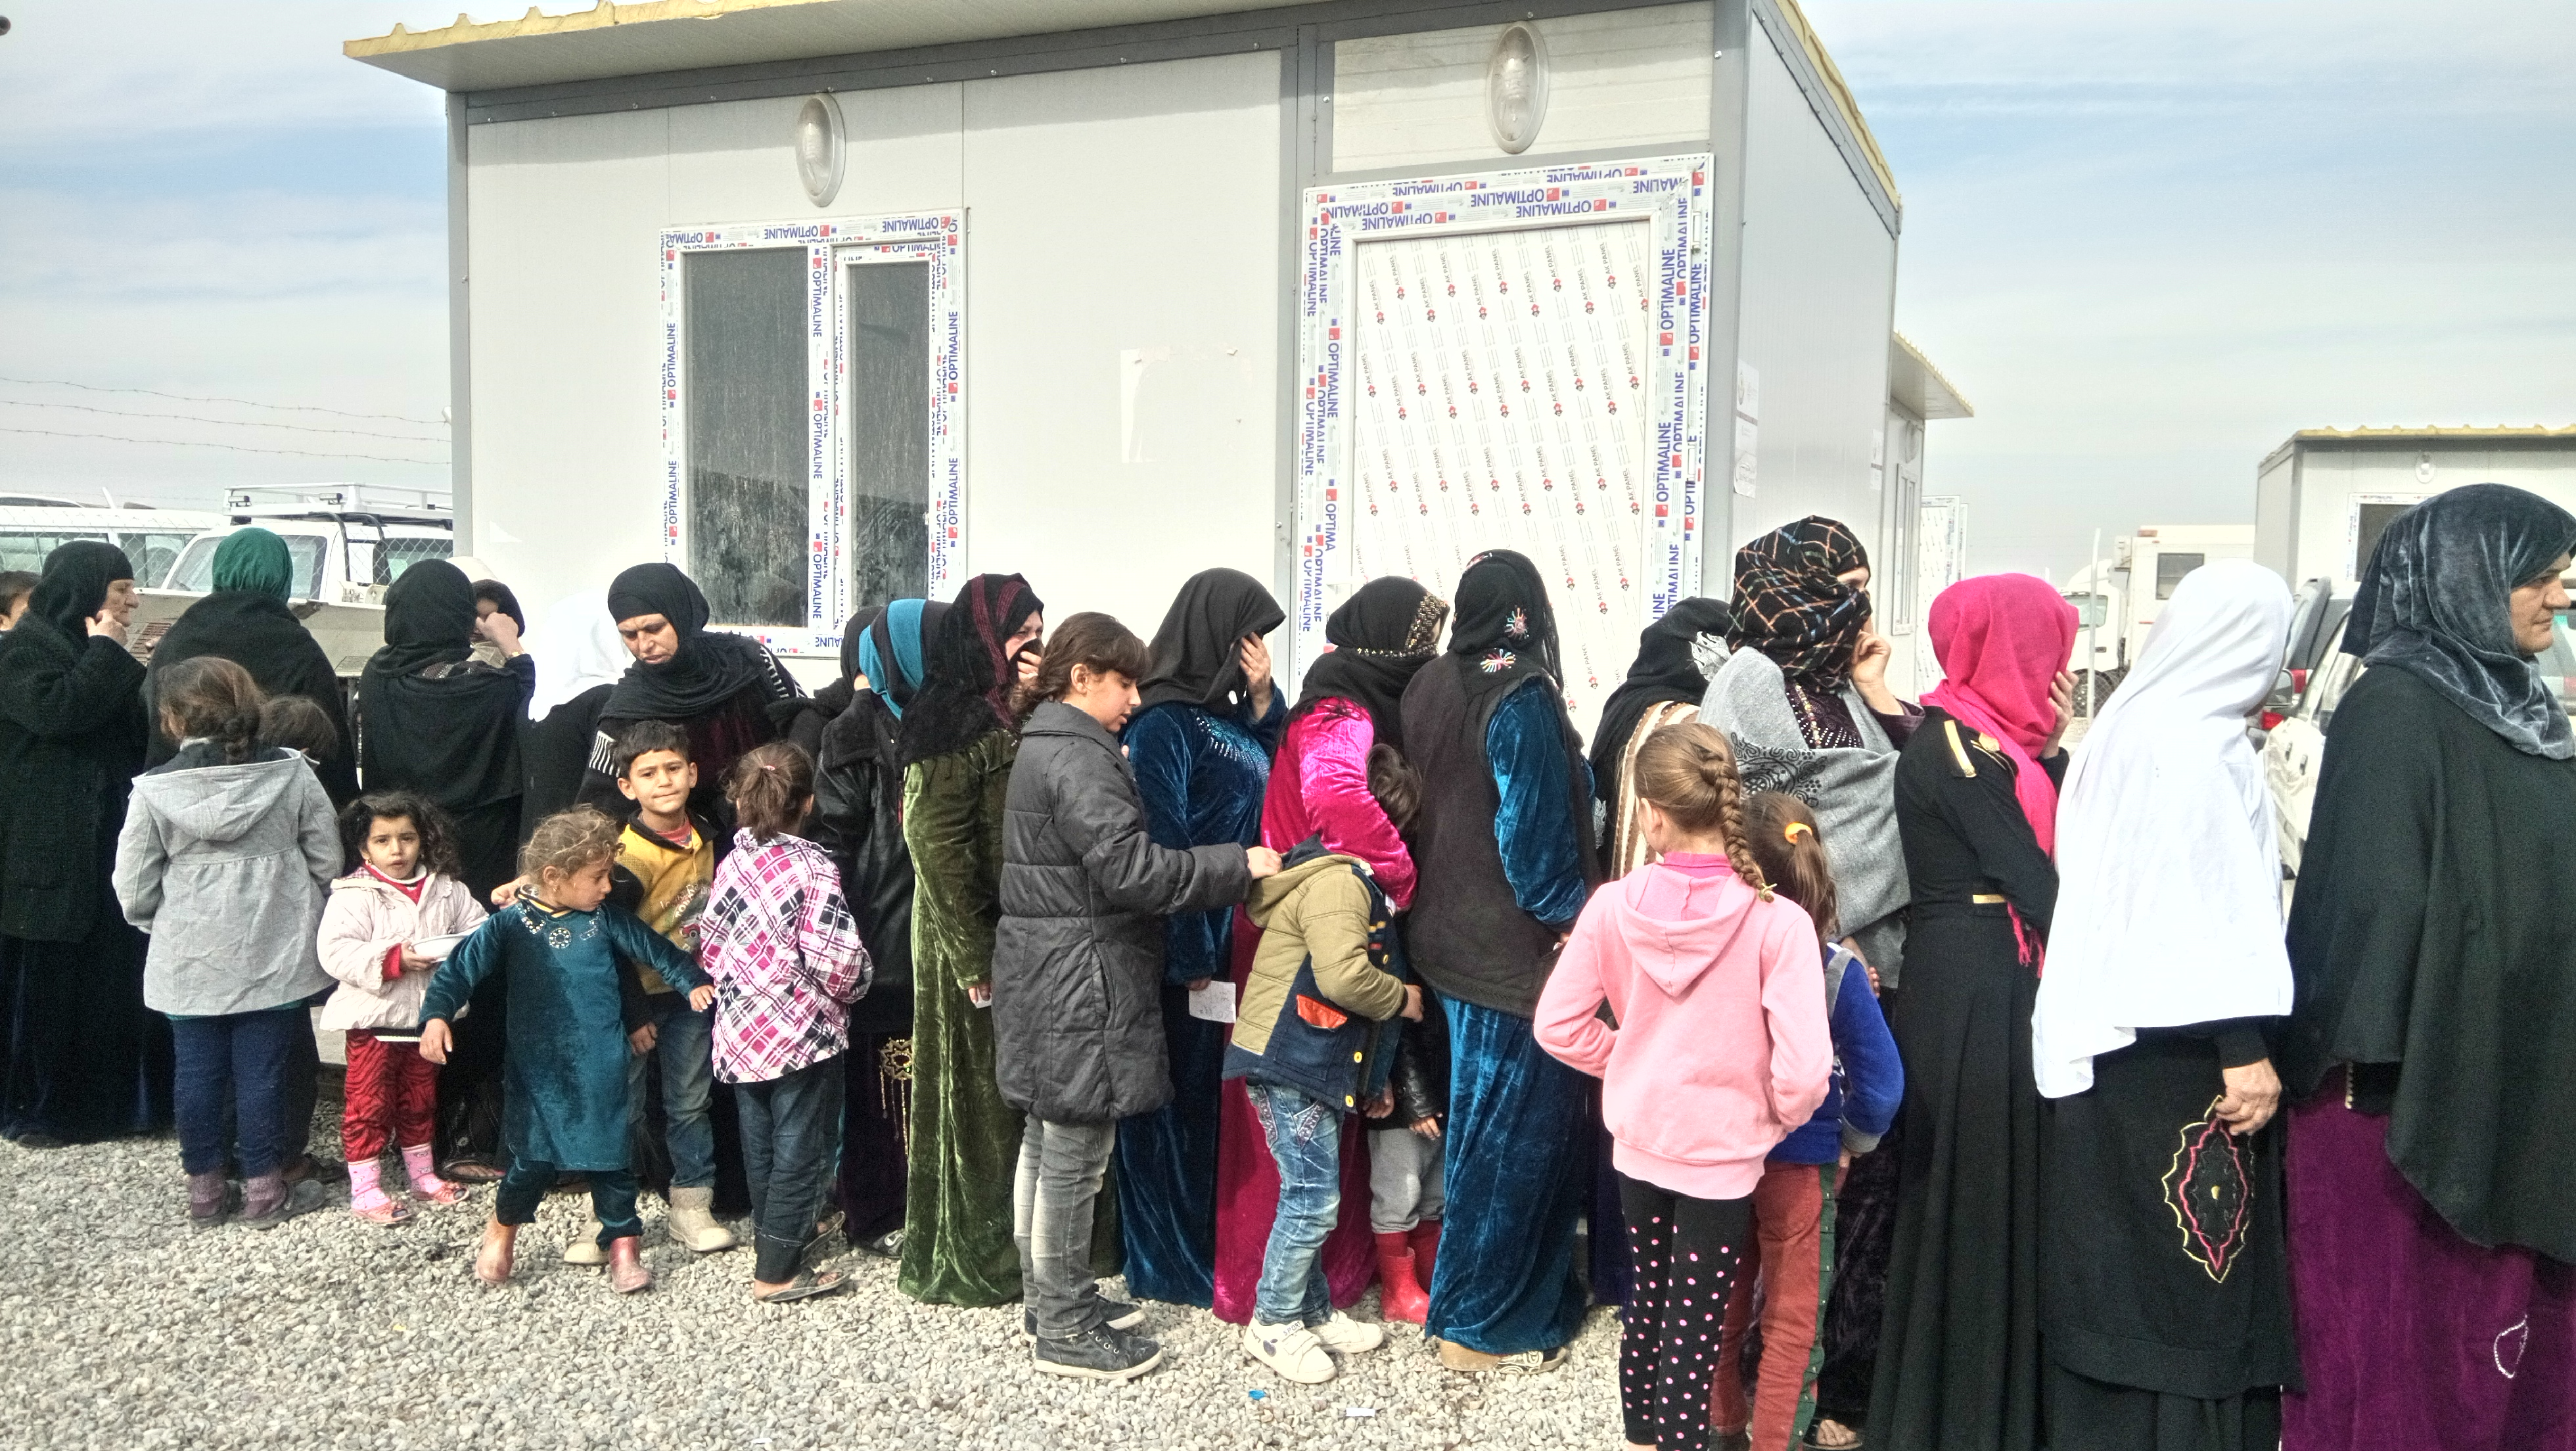 Dr. Bernice Rumala assisted women and girls in a camp for internally displaced persons near eastern Mosul in Iraq